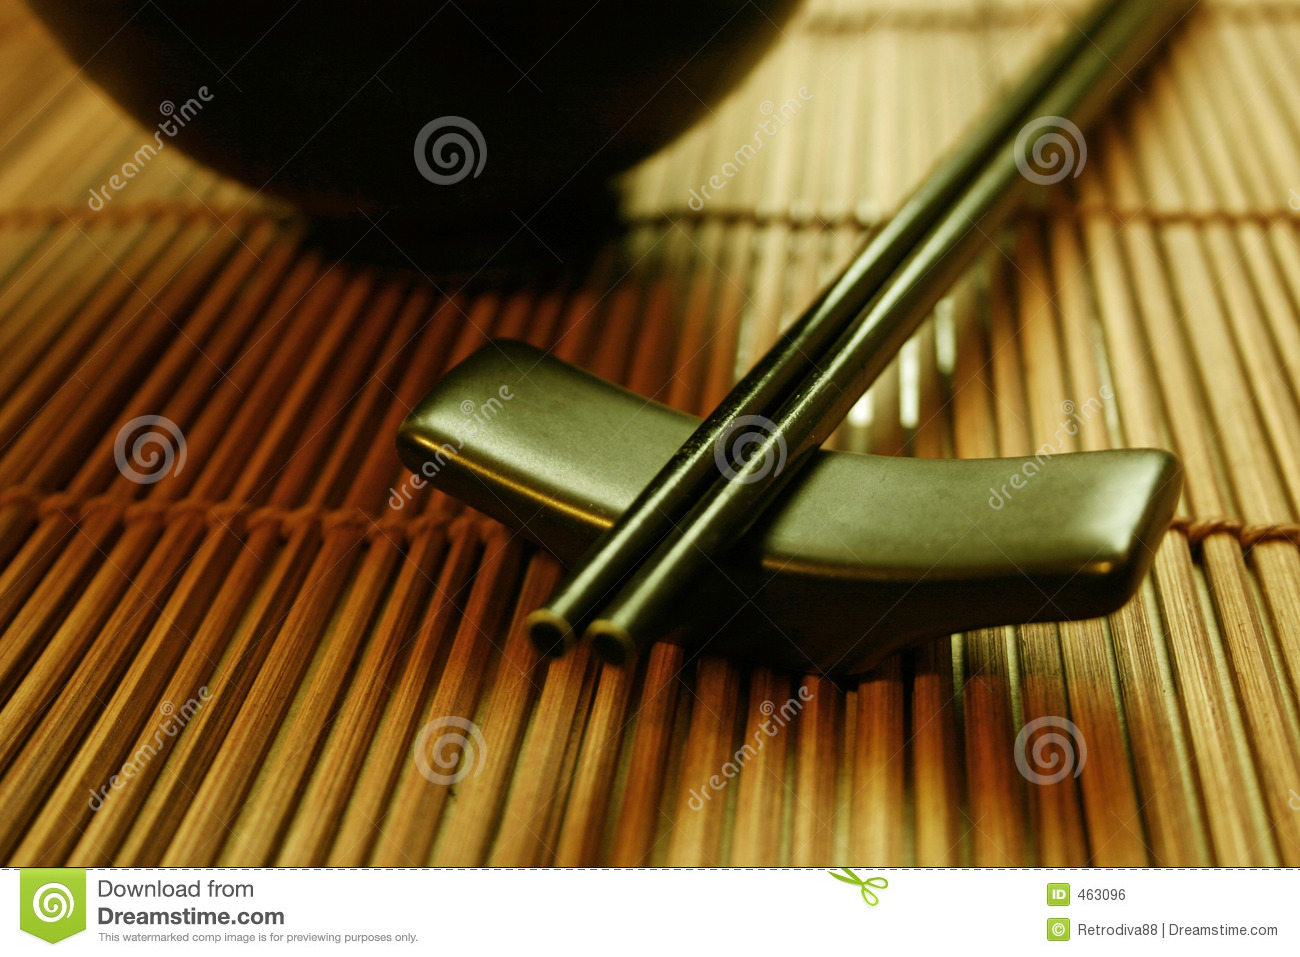 Asian Dining Set - Chopsticks and Bowl